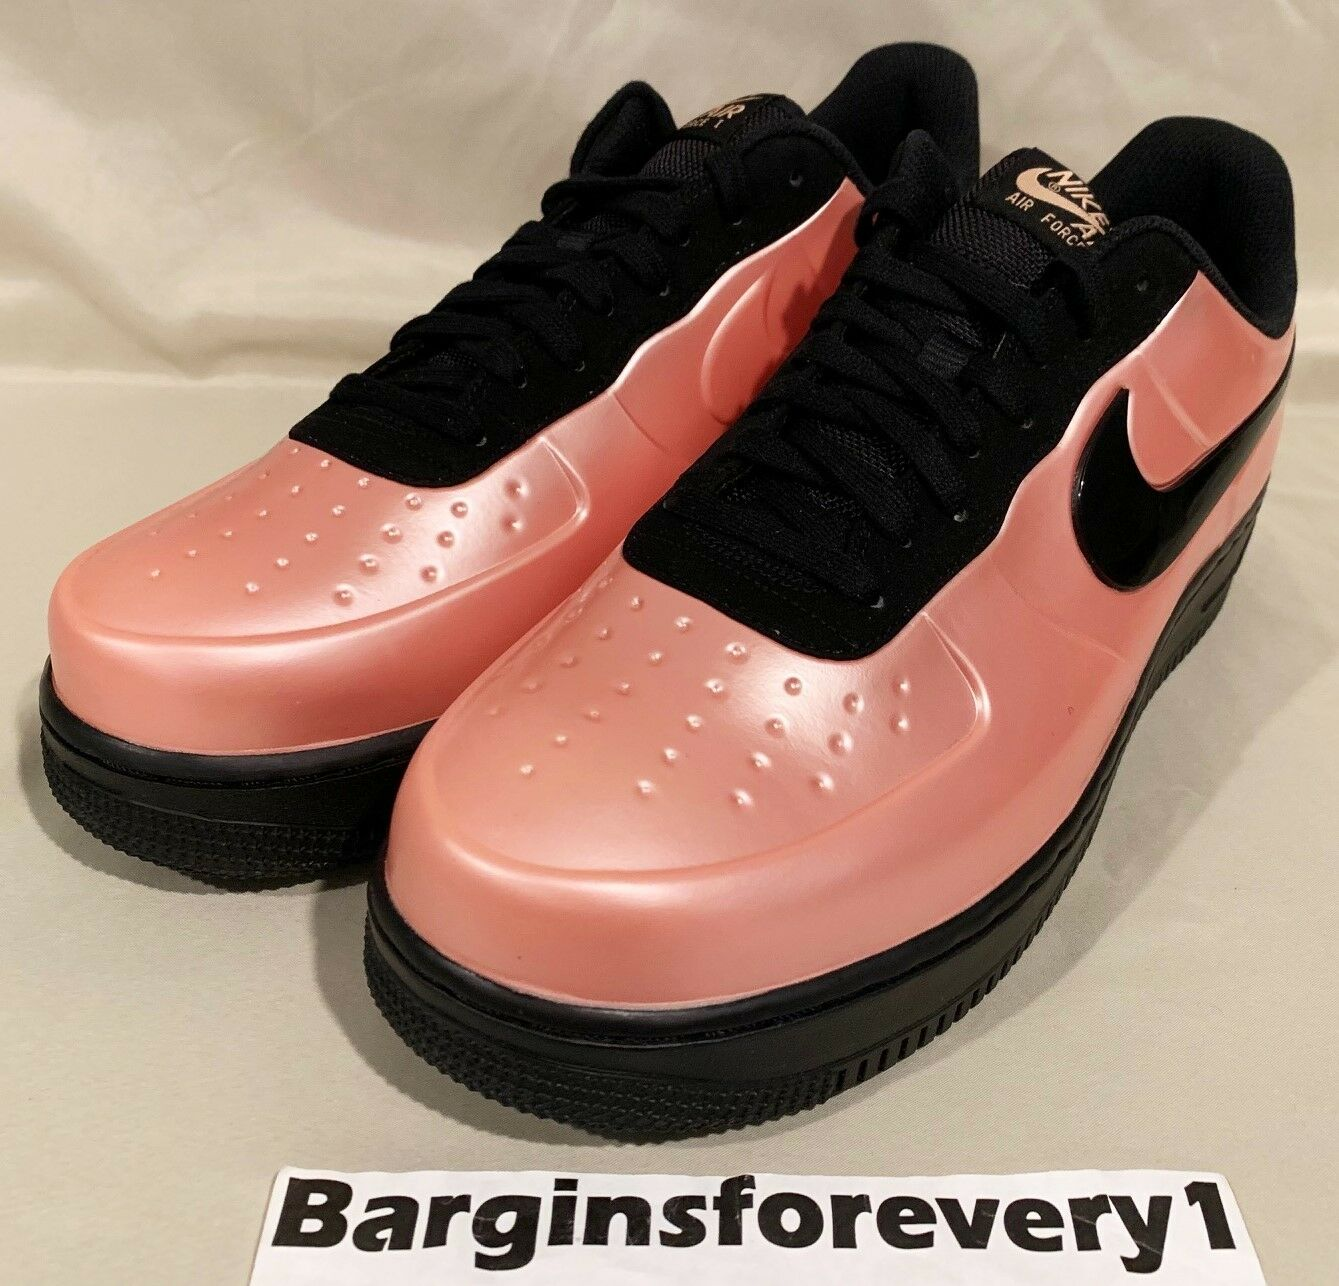 4e710134b2 New Nike AF1 Foamposite Pro Cup - Size 12 - Coral Stardust Black - AJ3664-